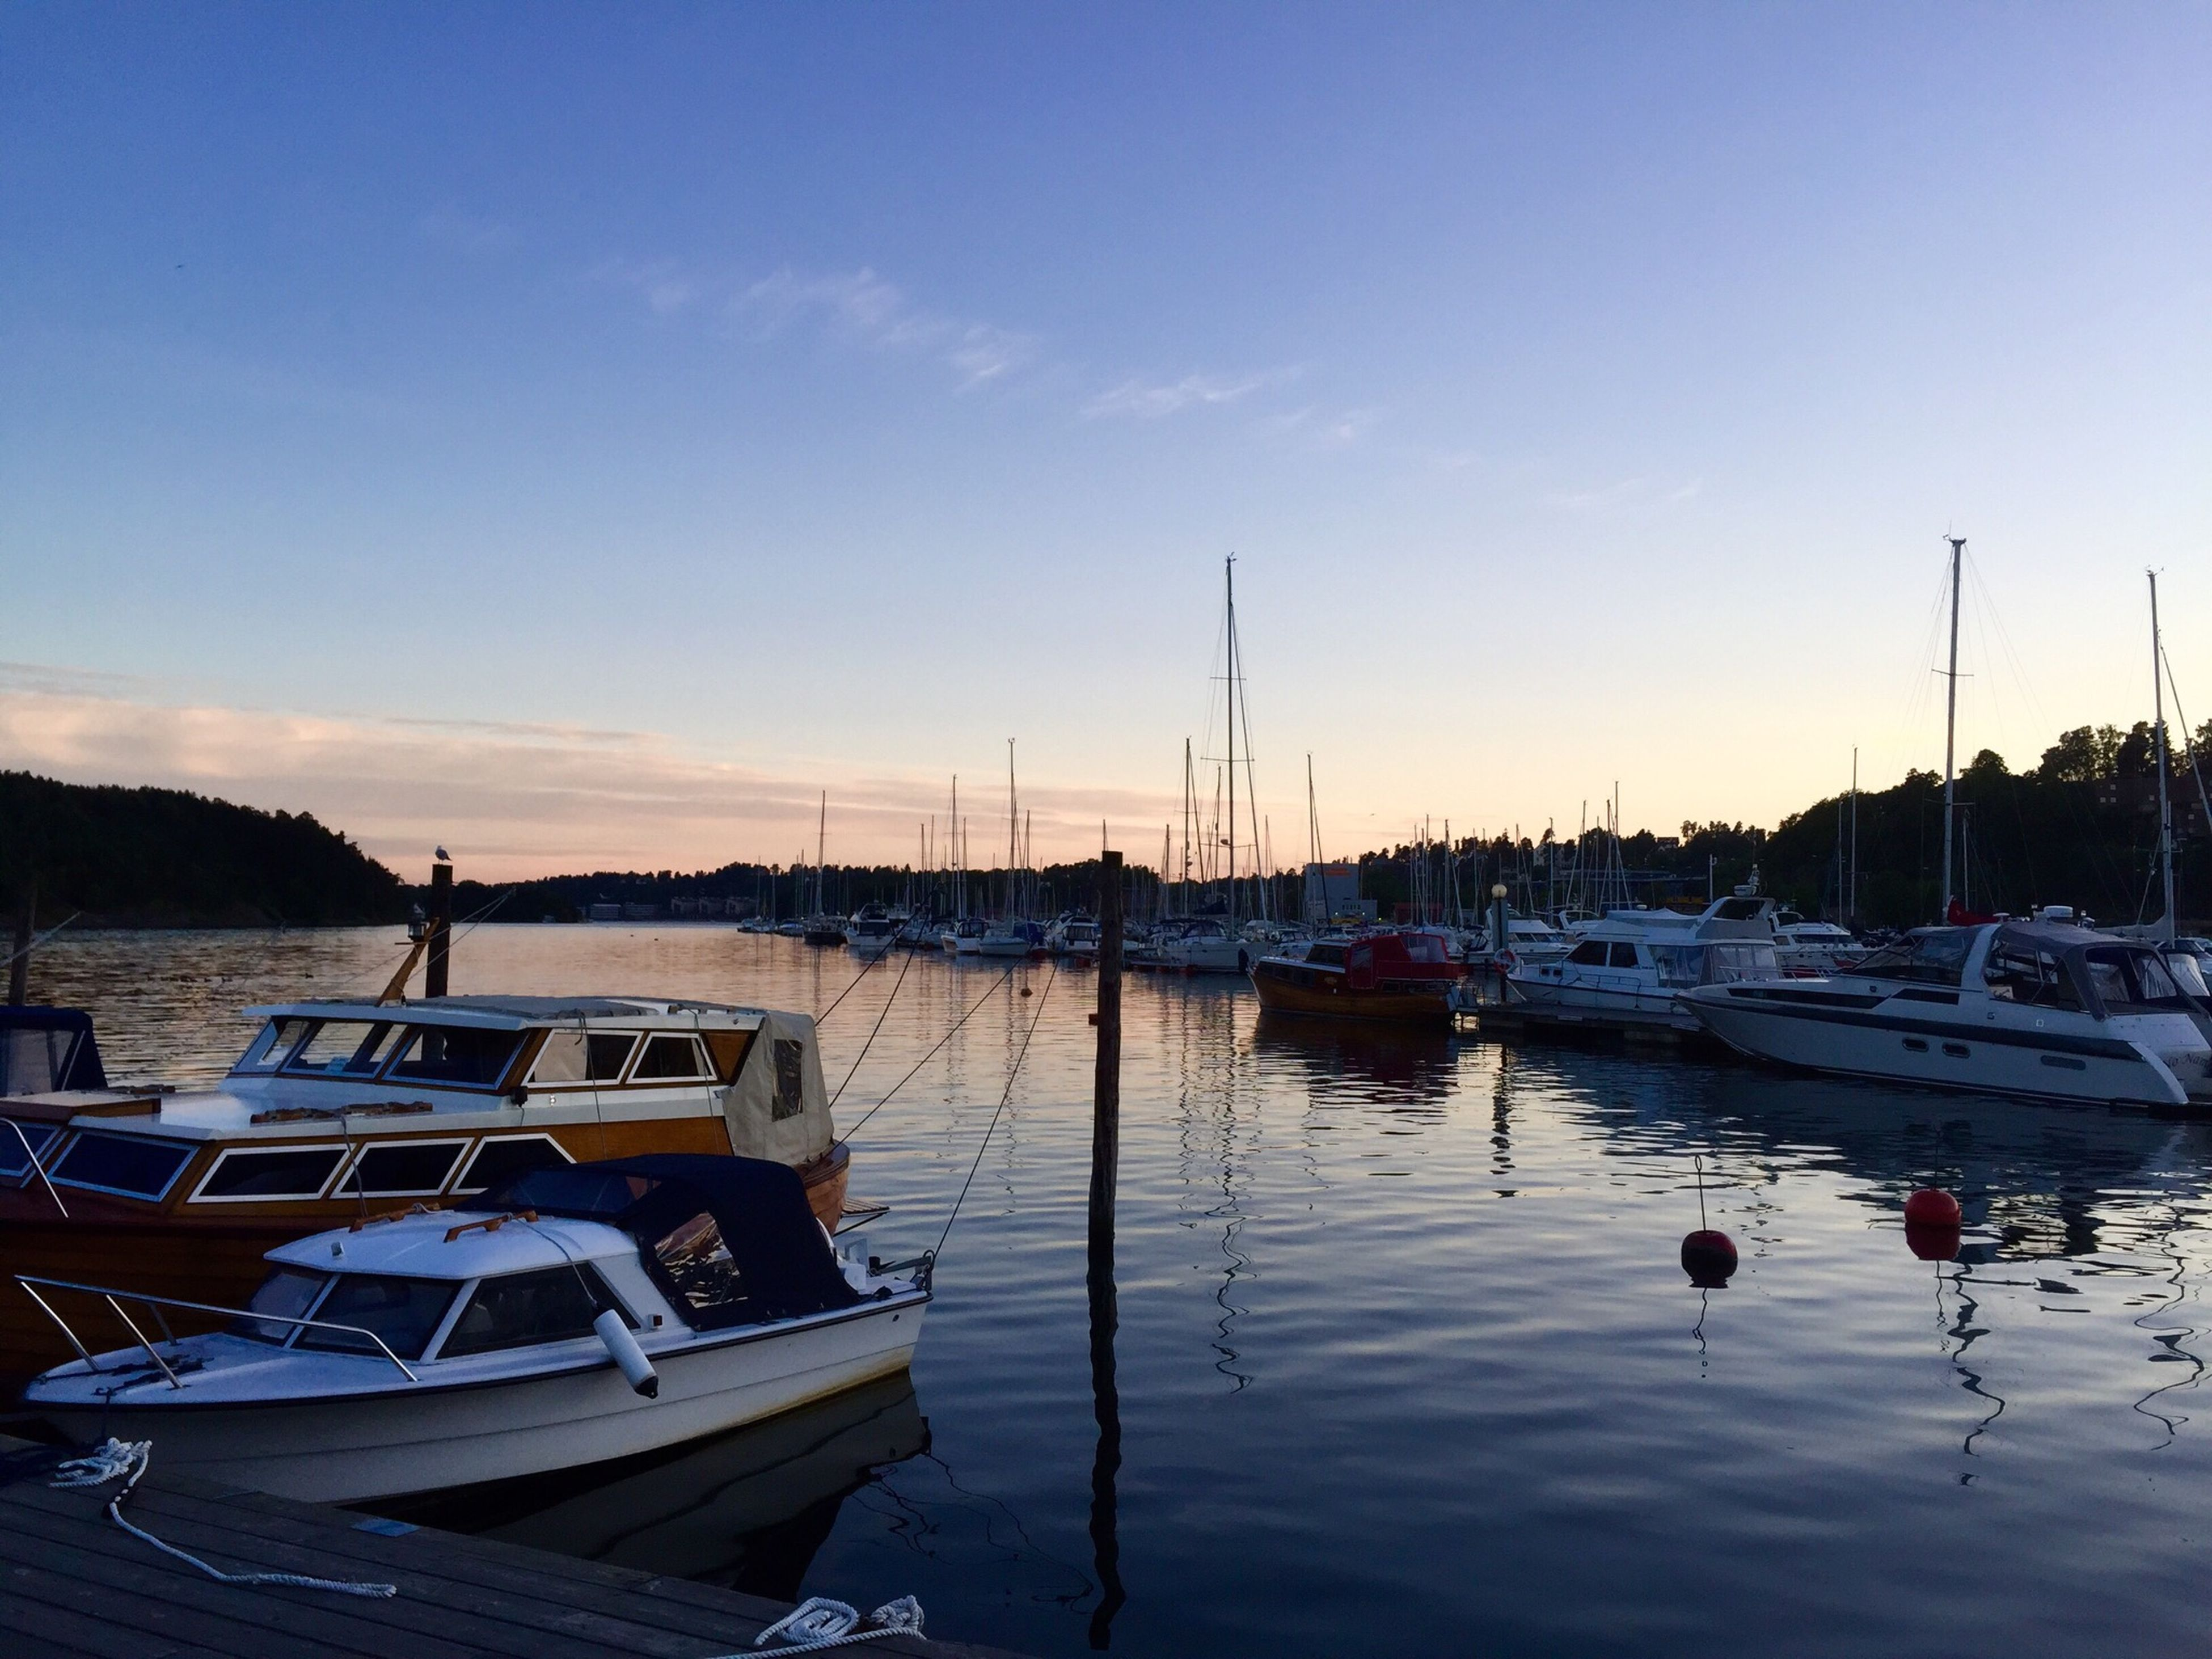 nautical vessel, transportation, mode of transport, moored, boat, water, mast, harbor, sky, sunset, reflection, sailboat, travel, waterfront, blue, nature, marina, tranquility, outdoors, beauty in nature